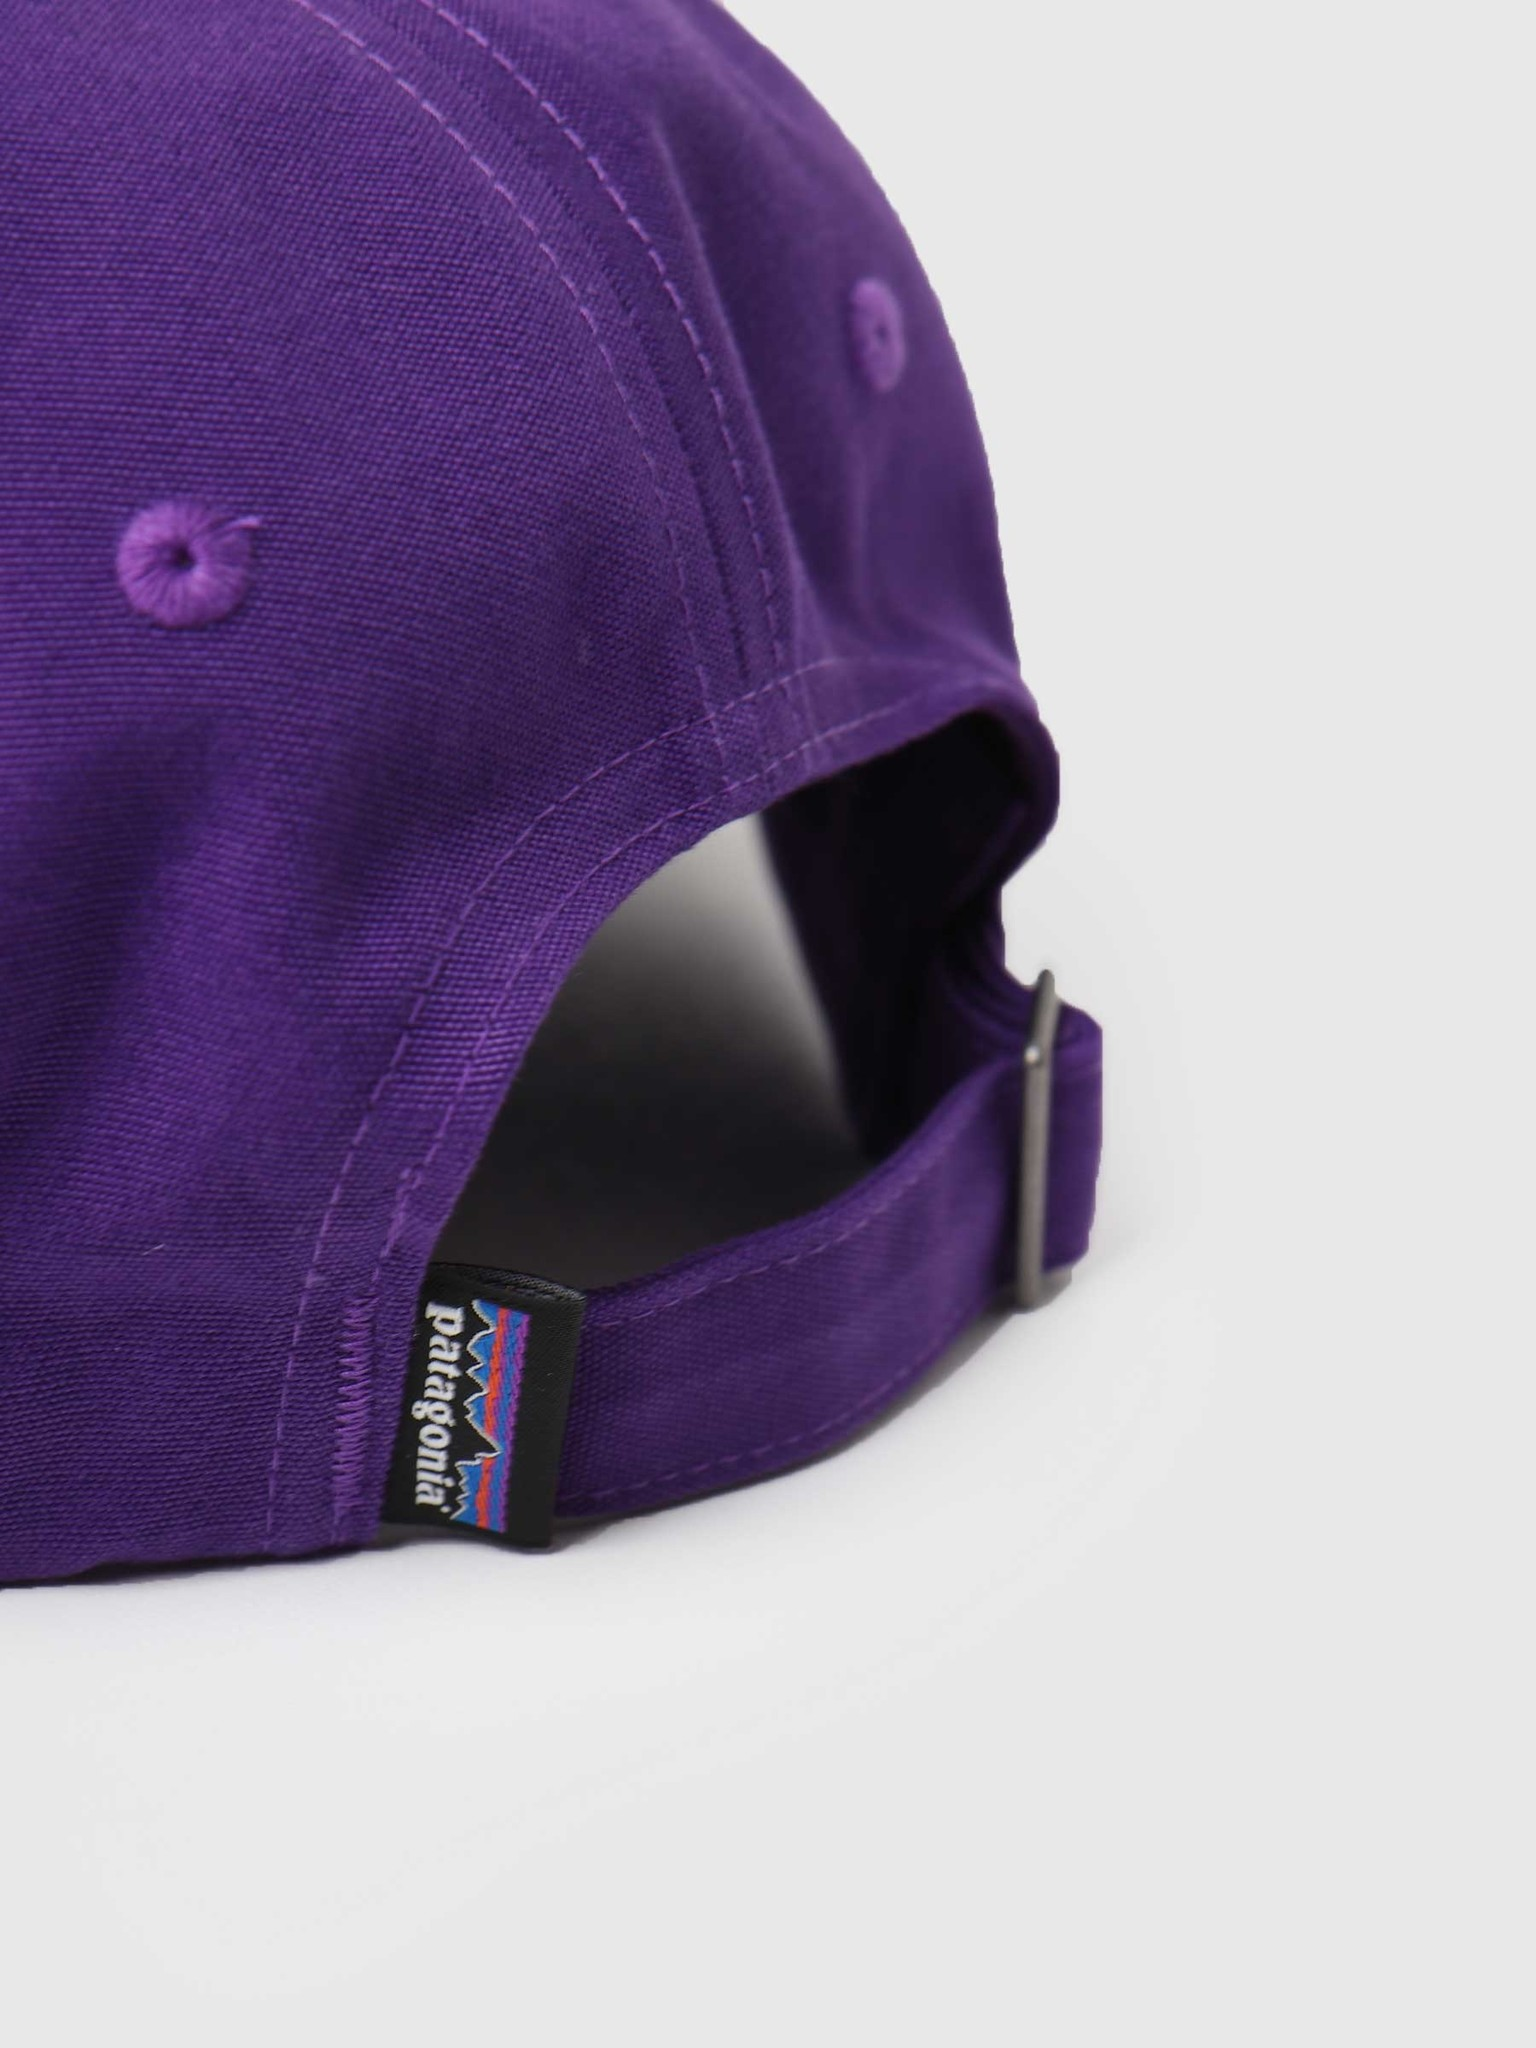 Patagonia Patagonia Together for the Planet Label Trad Cap Purple 38320